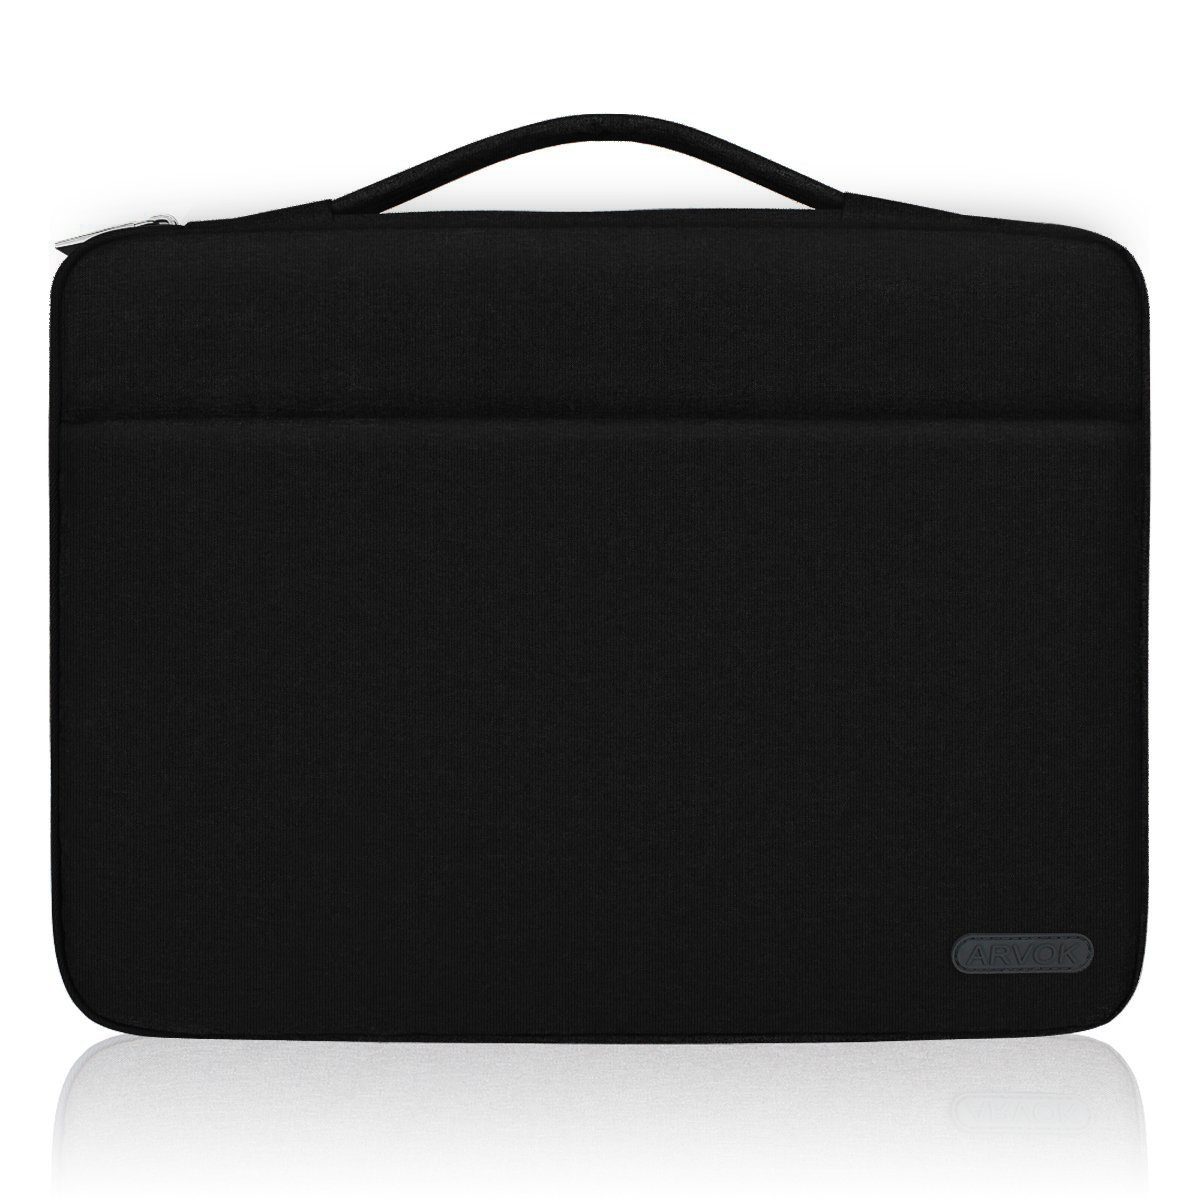 Arvok 15 15.6 Inch Water-resistant Canvas Fabric Laptop Sleeve with Handle & Zipper Pocket/Notebook Computer Case/Ultrabook Tablet Briefcase Carrying Bag for Acer/Asus/Dell/Lenovo/HP, Black